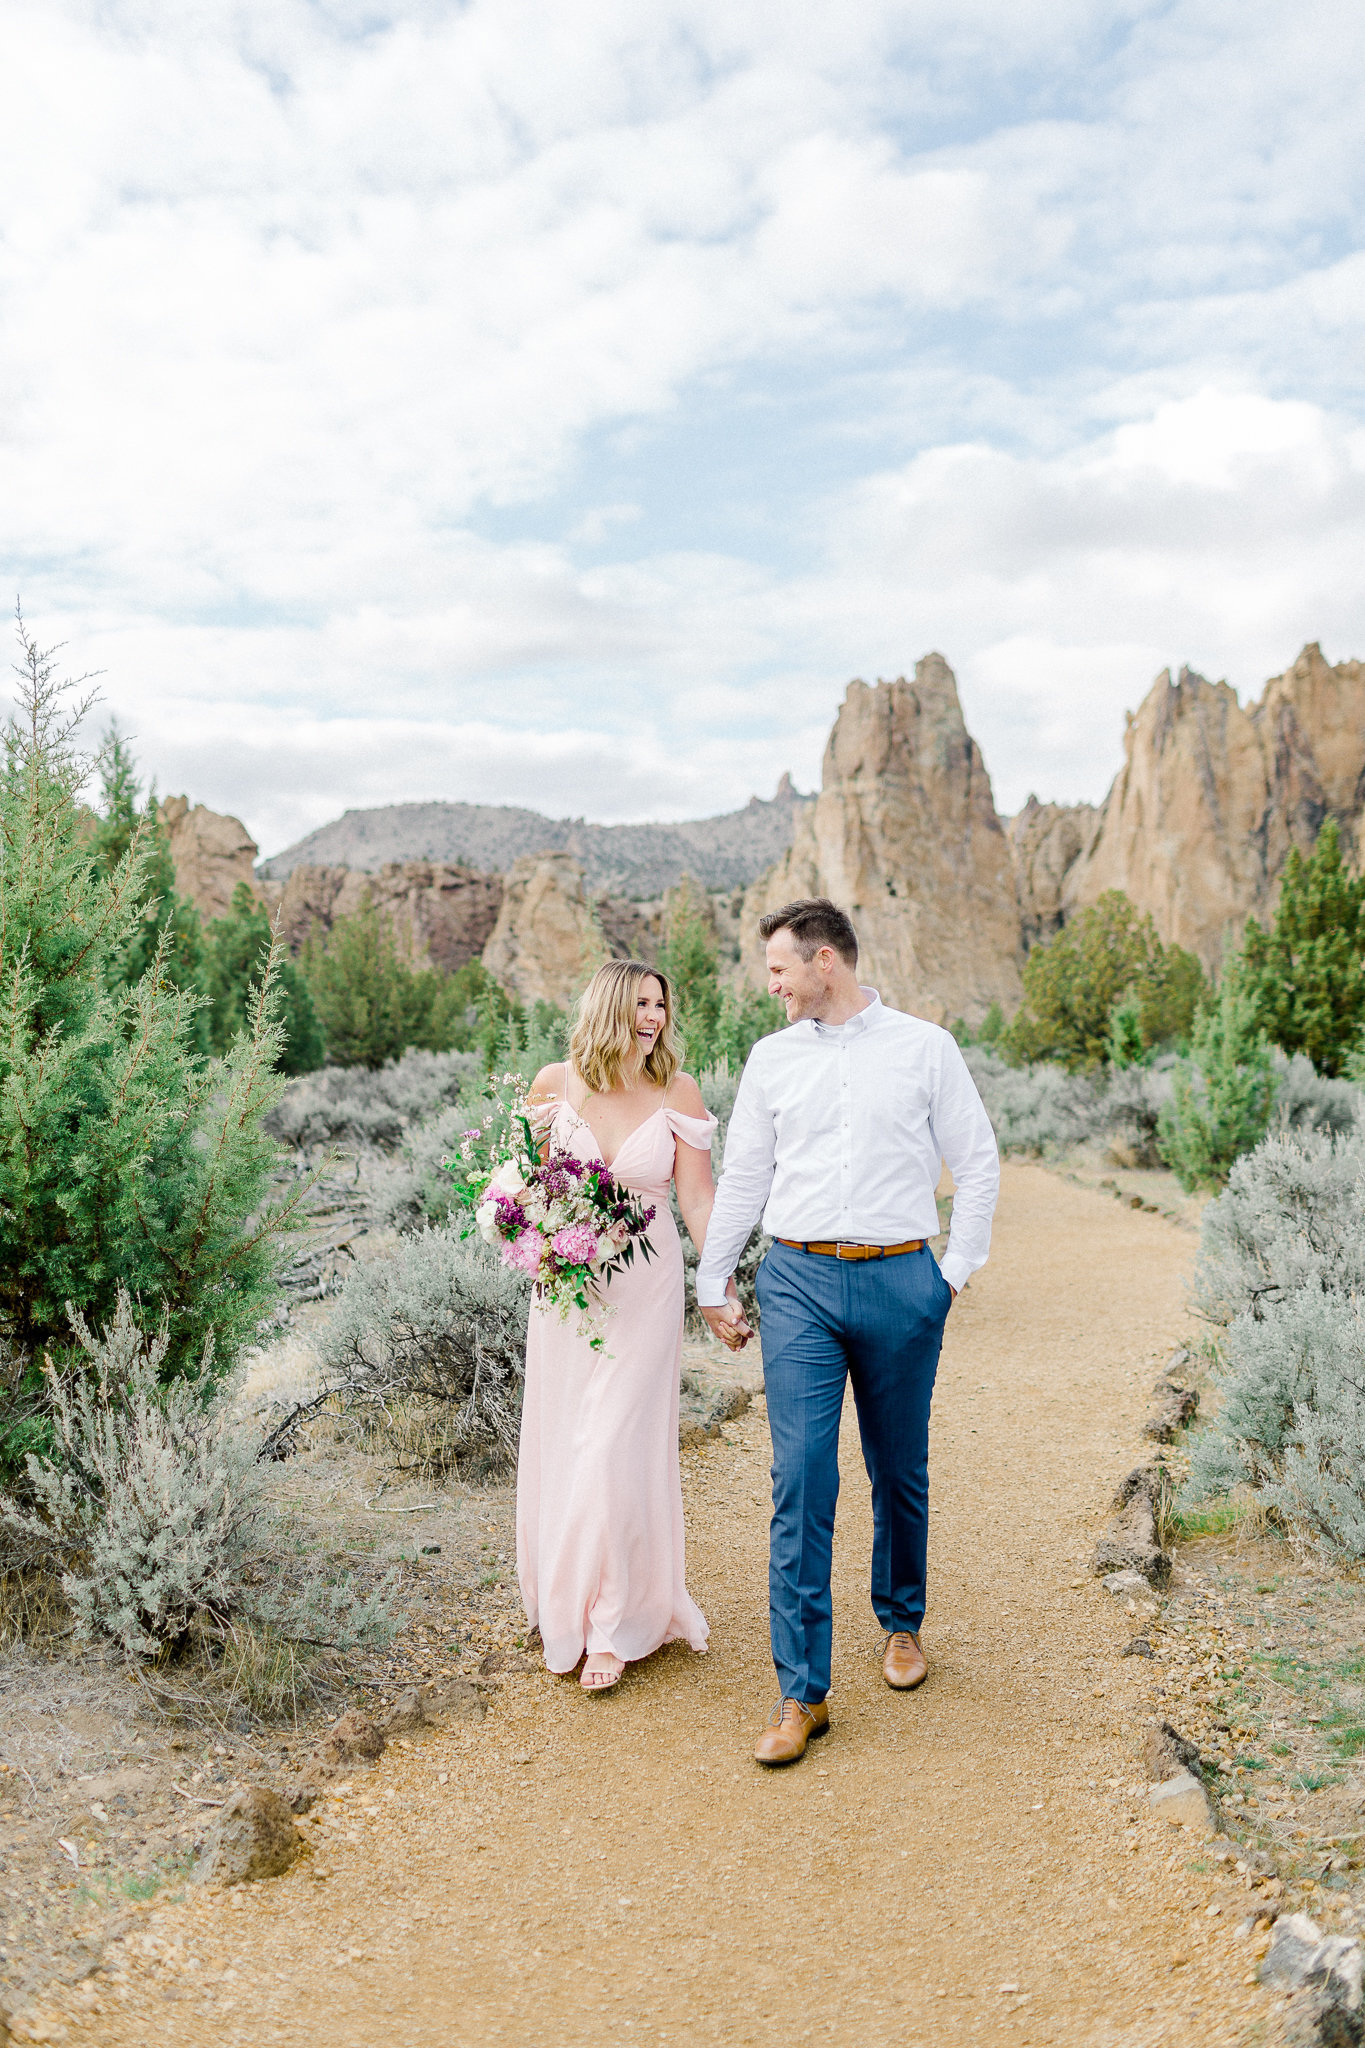 photographe-seance-anniversaire-de-mariage-smith-rock-state-park-oregon-lisa-renault-photographie-wedding-anniversary-session-photographer-2